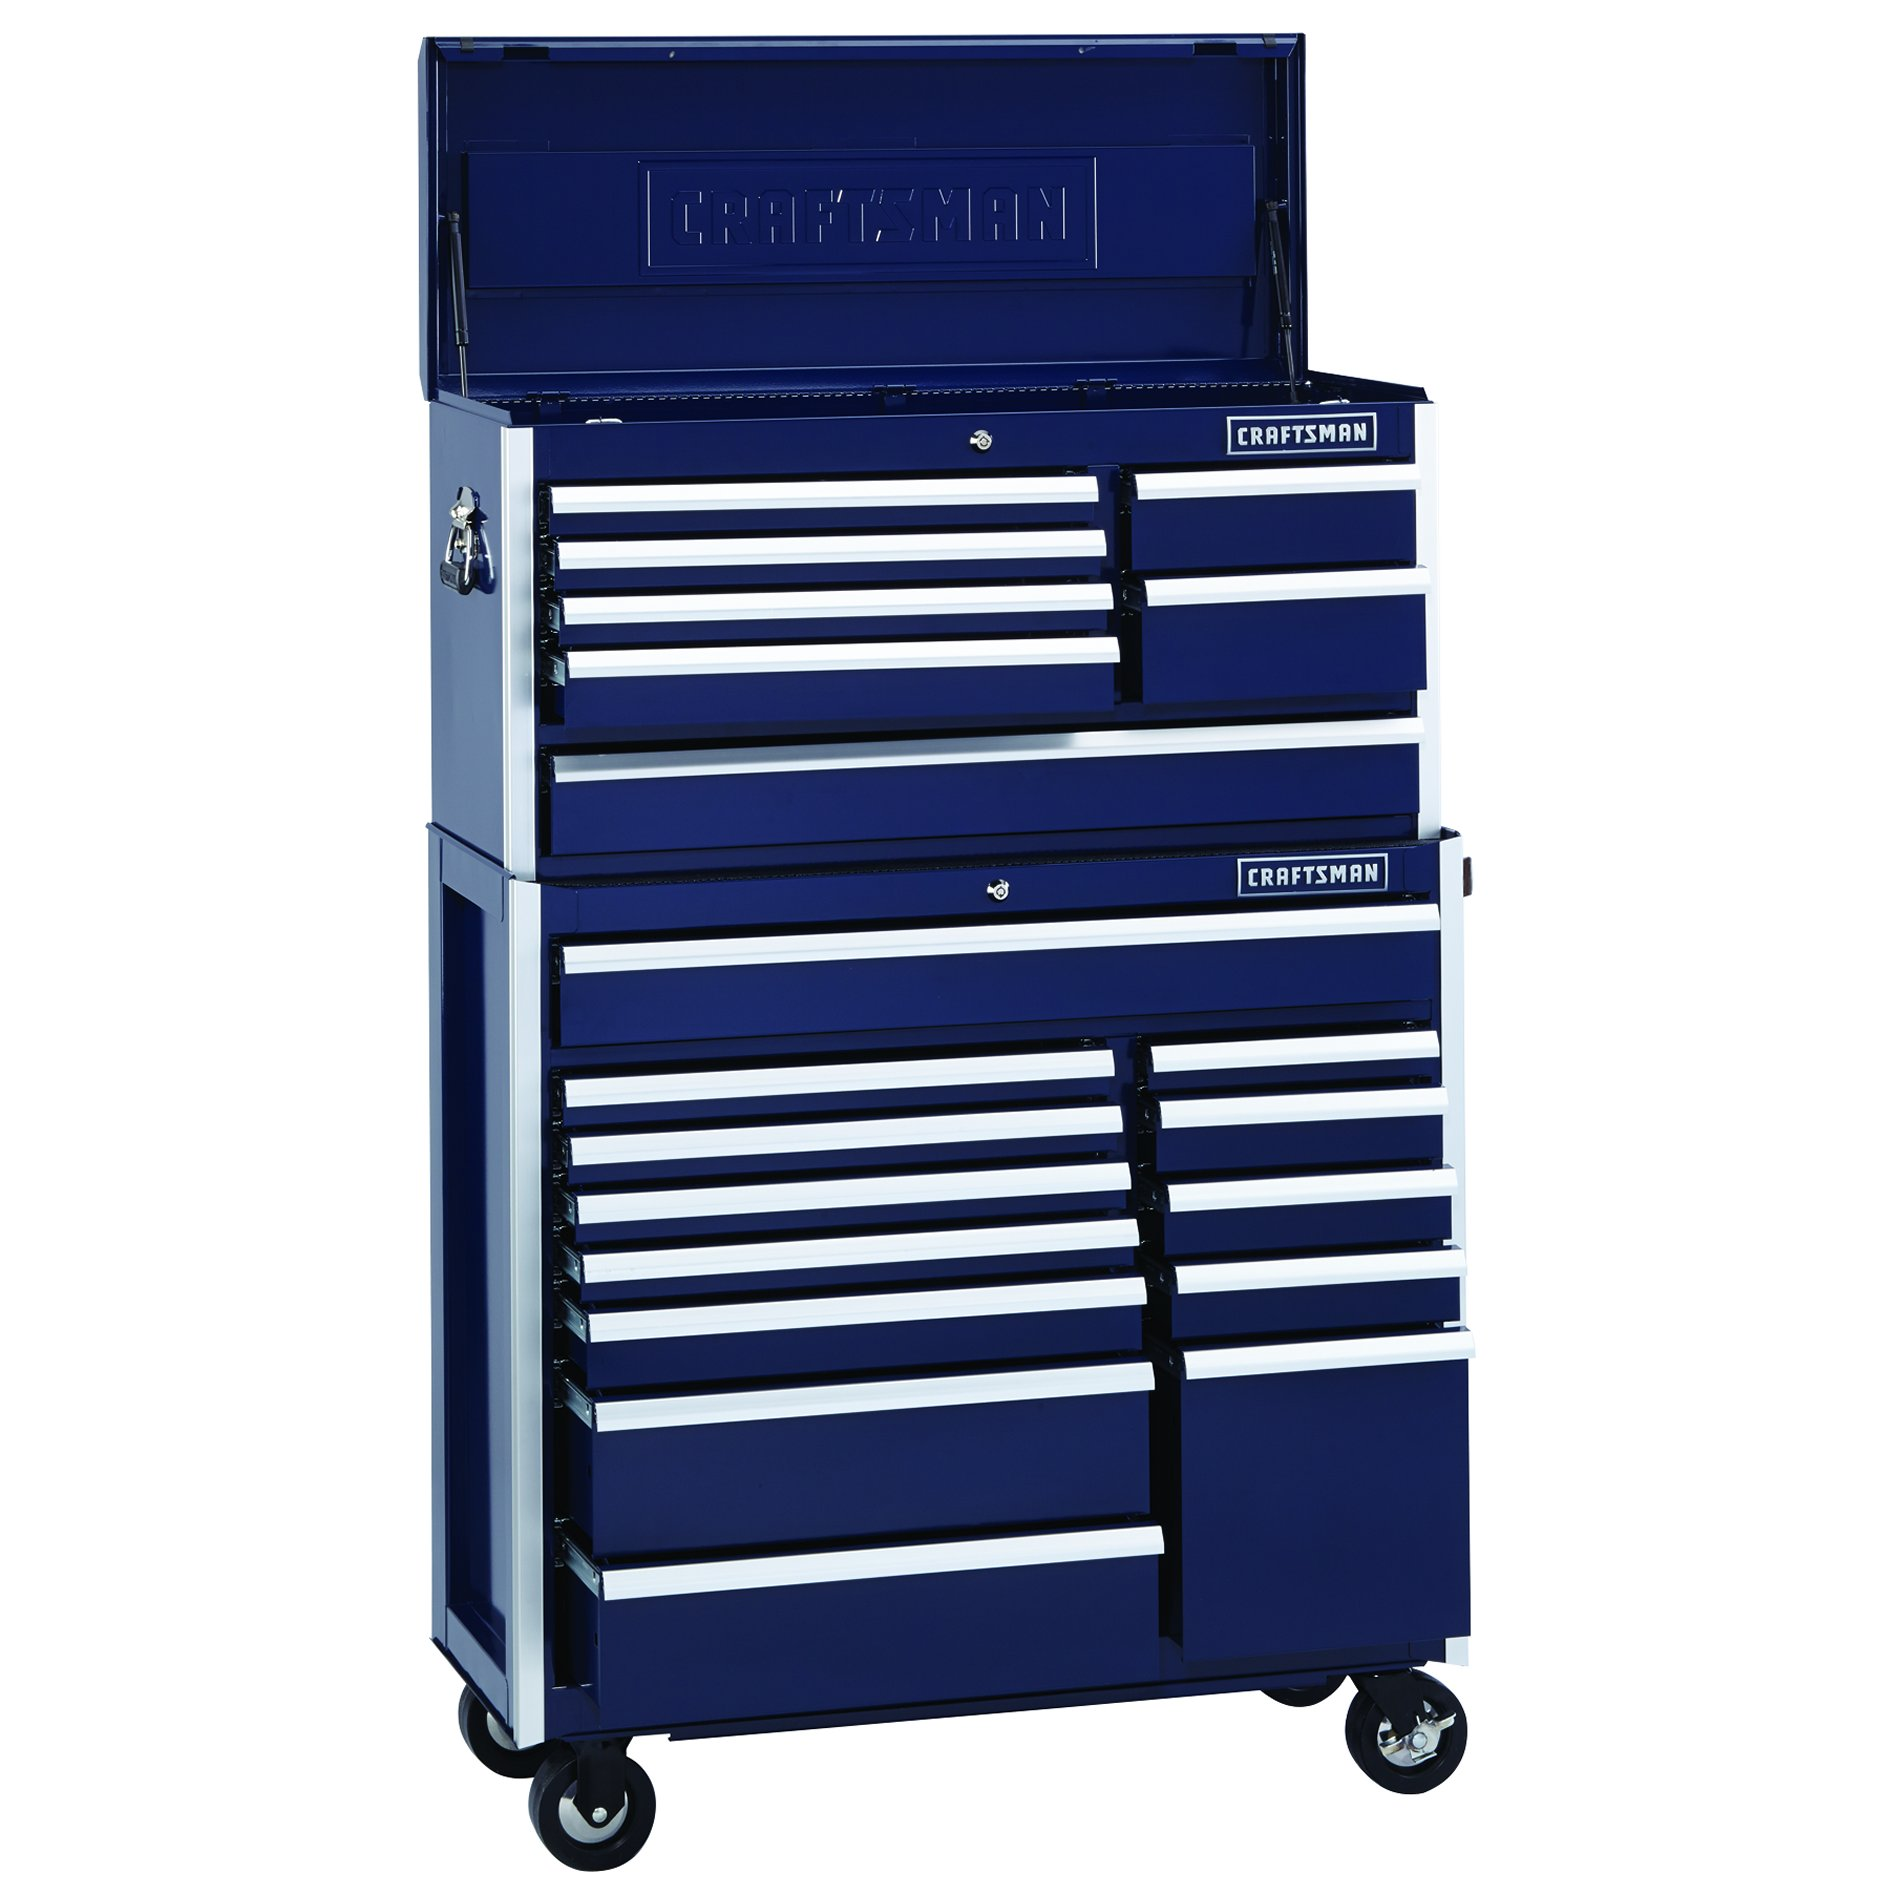 Craftsman EDGE Series 40 In. 13-Drawer Premium Heavy-Duty Ball-Bearing Rolling Cabinet- Midnight Blue